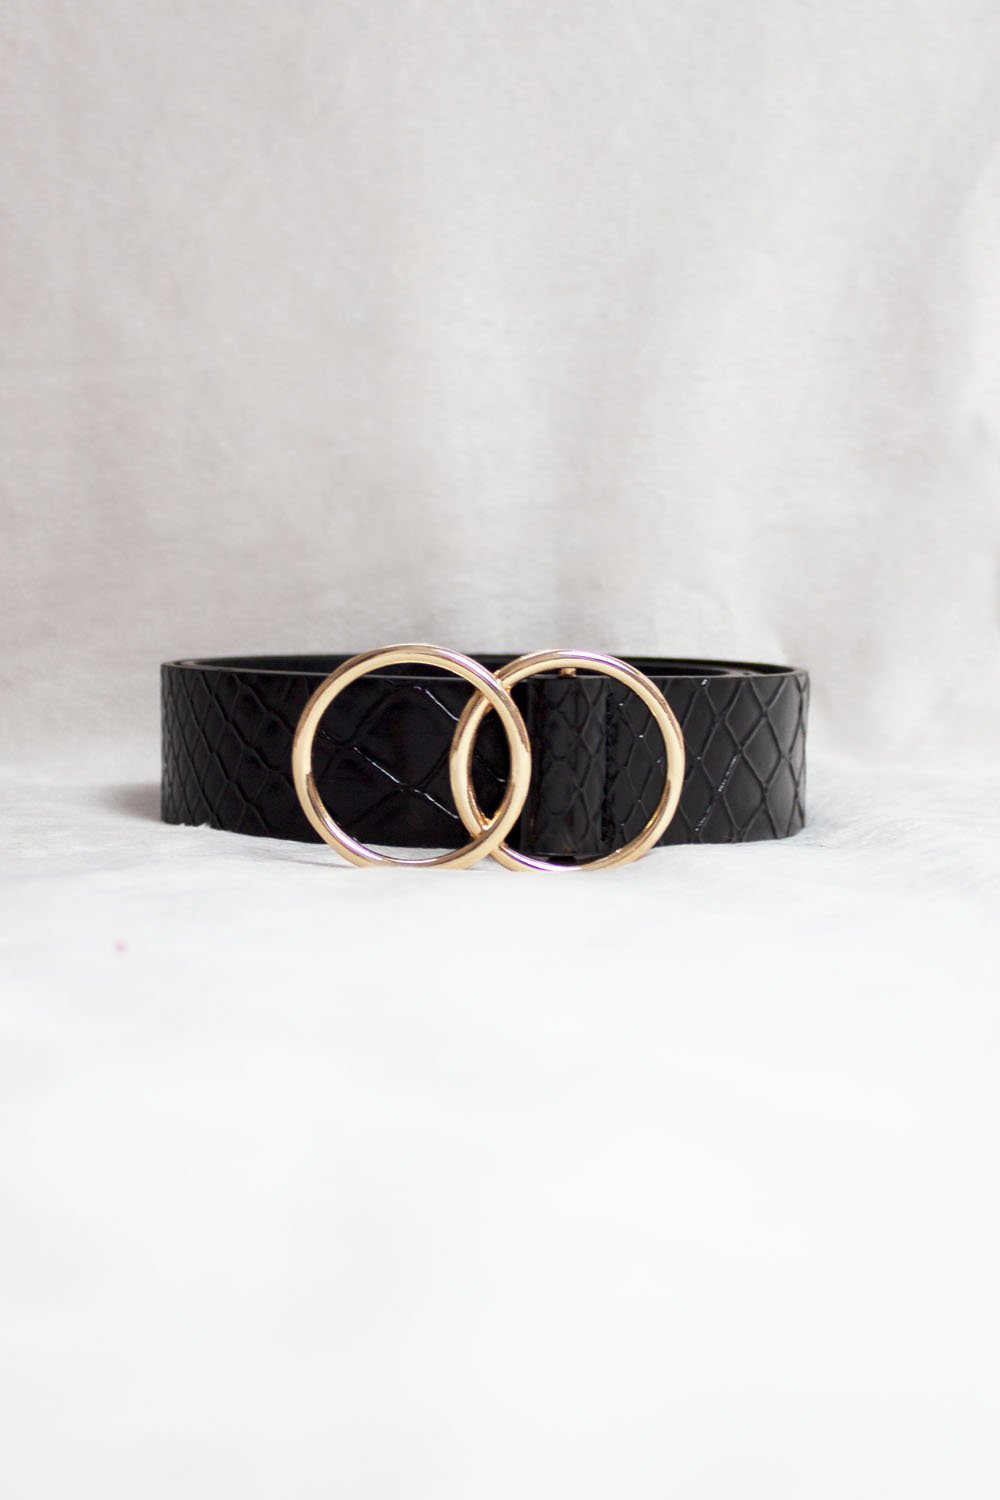 GOLD DOUBLE CIRCLE CROC  BELT